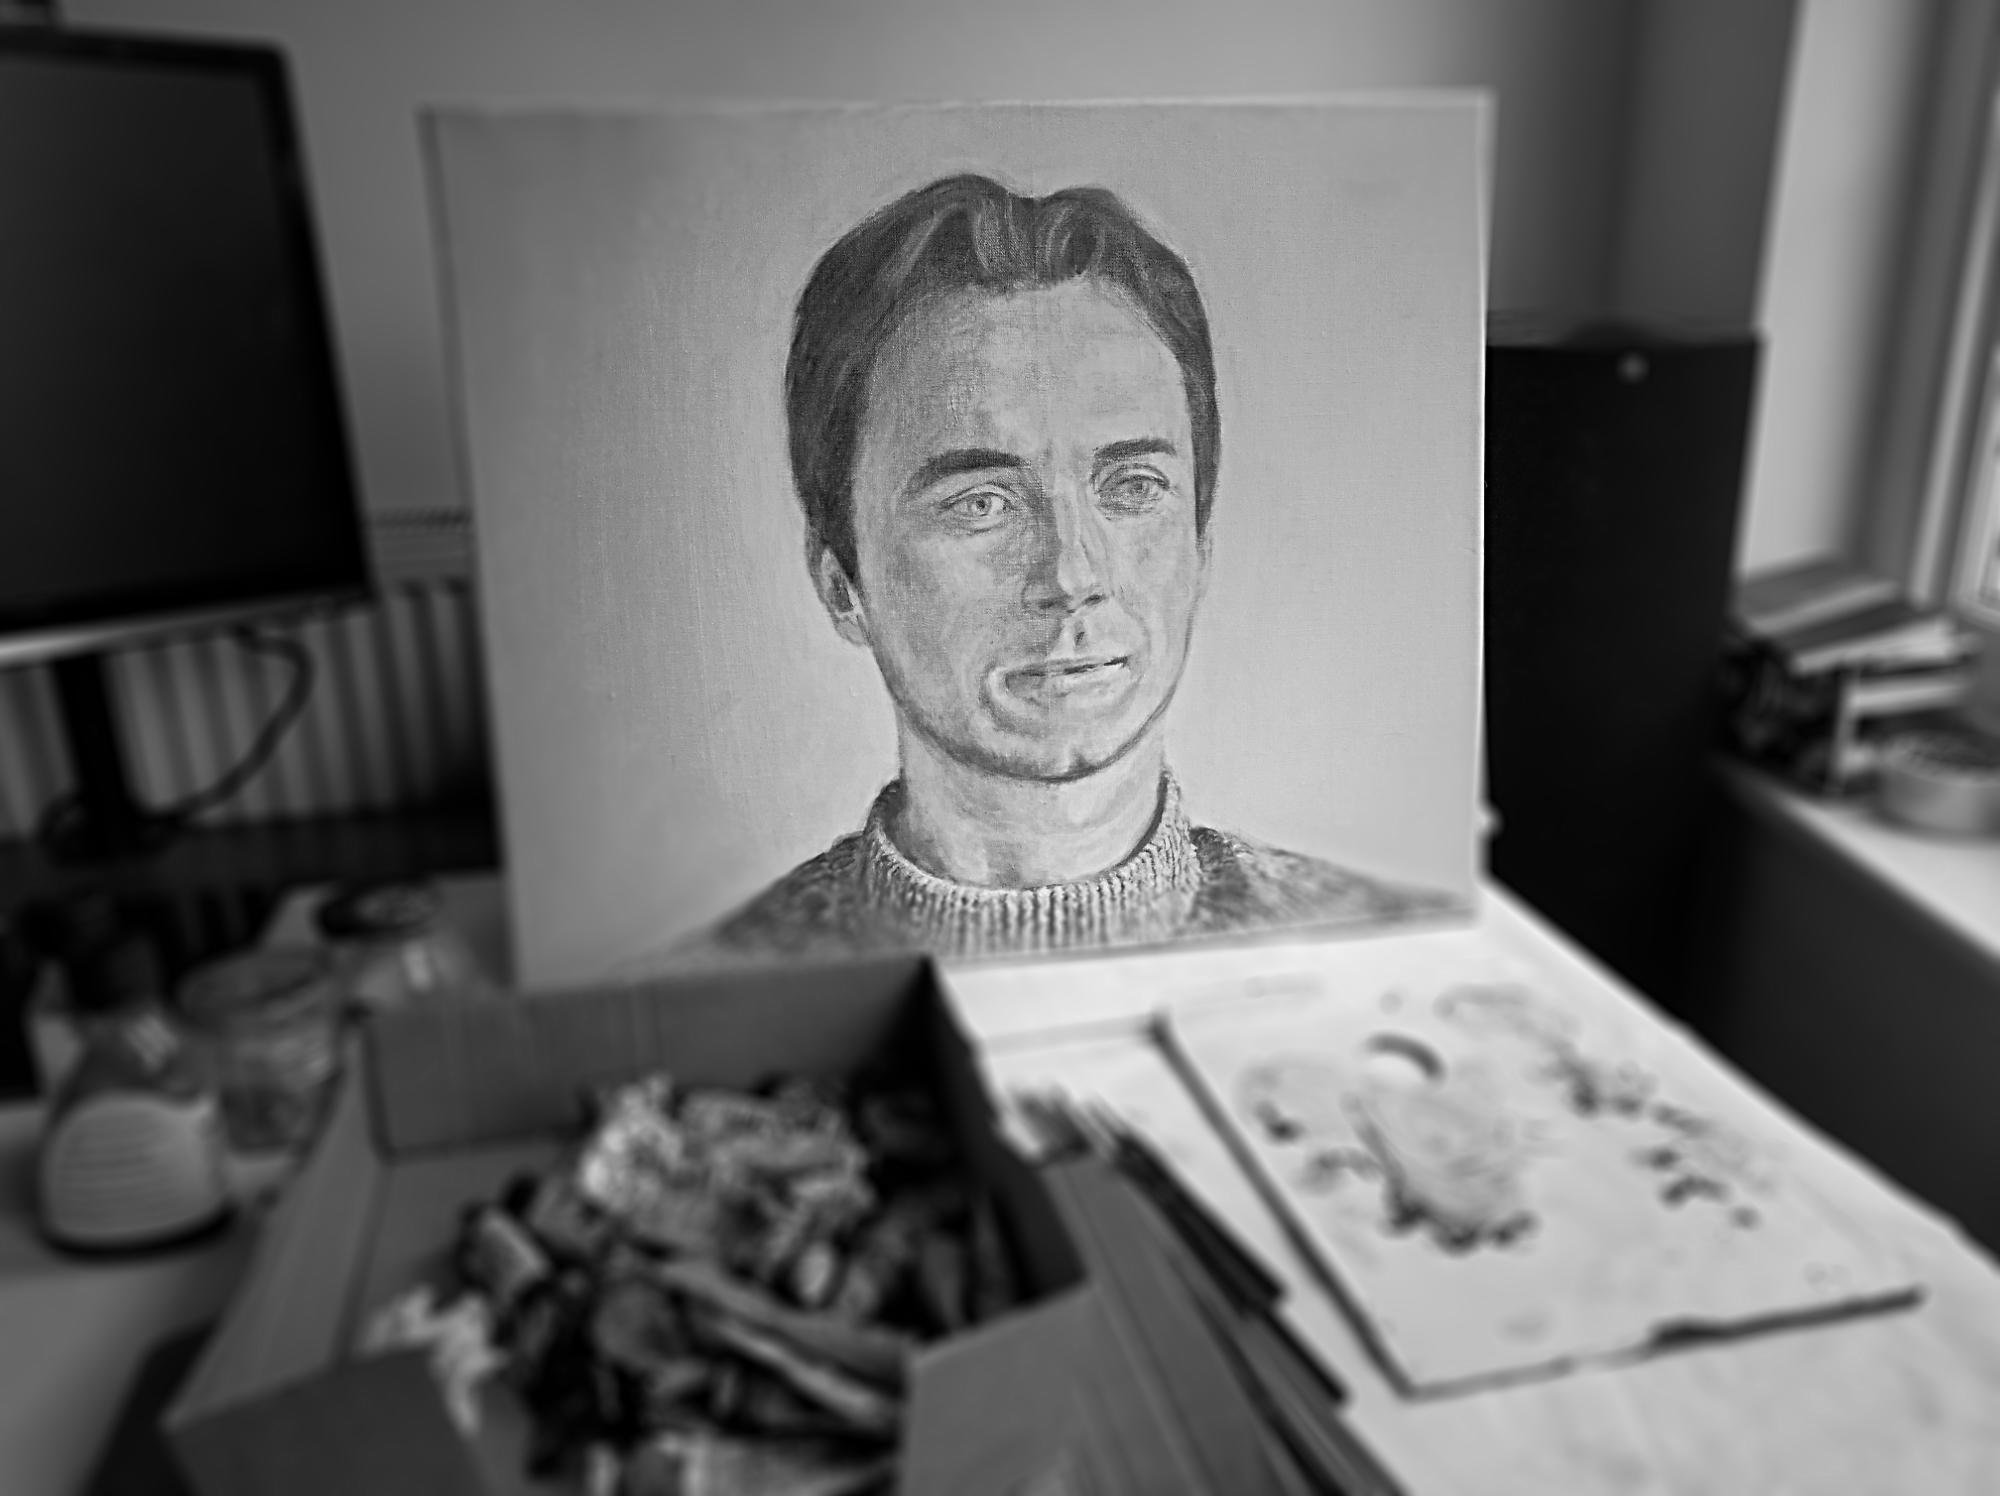 working on a portrait commission in temporary studio